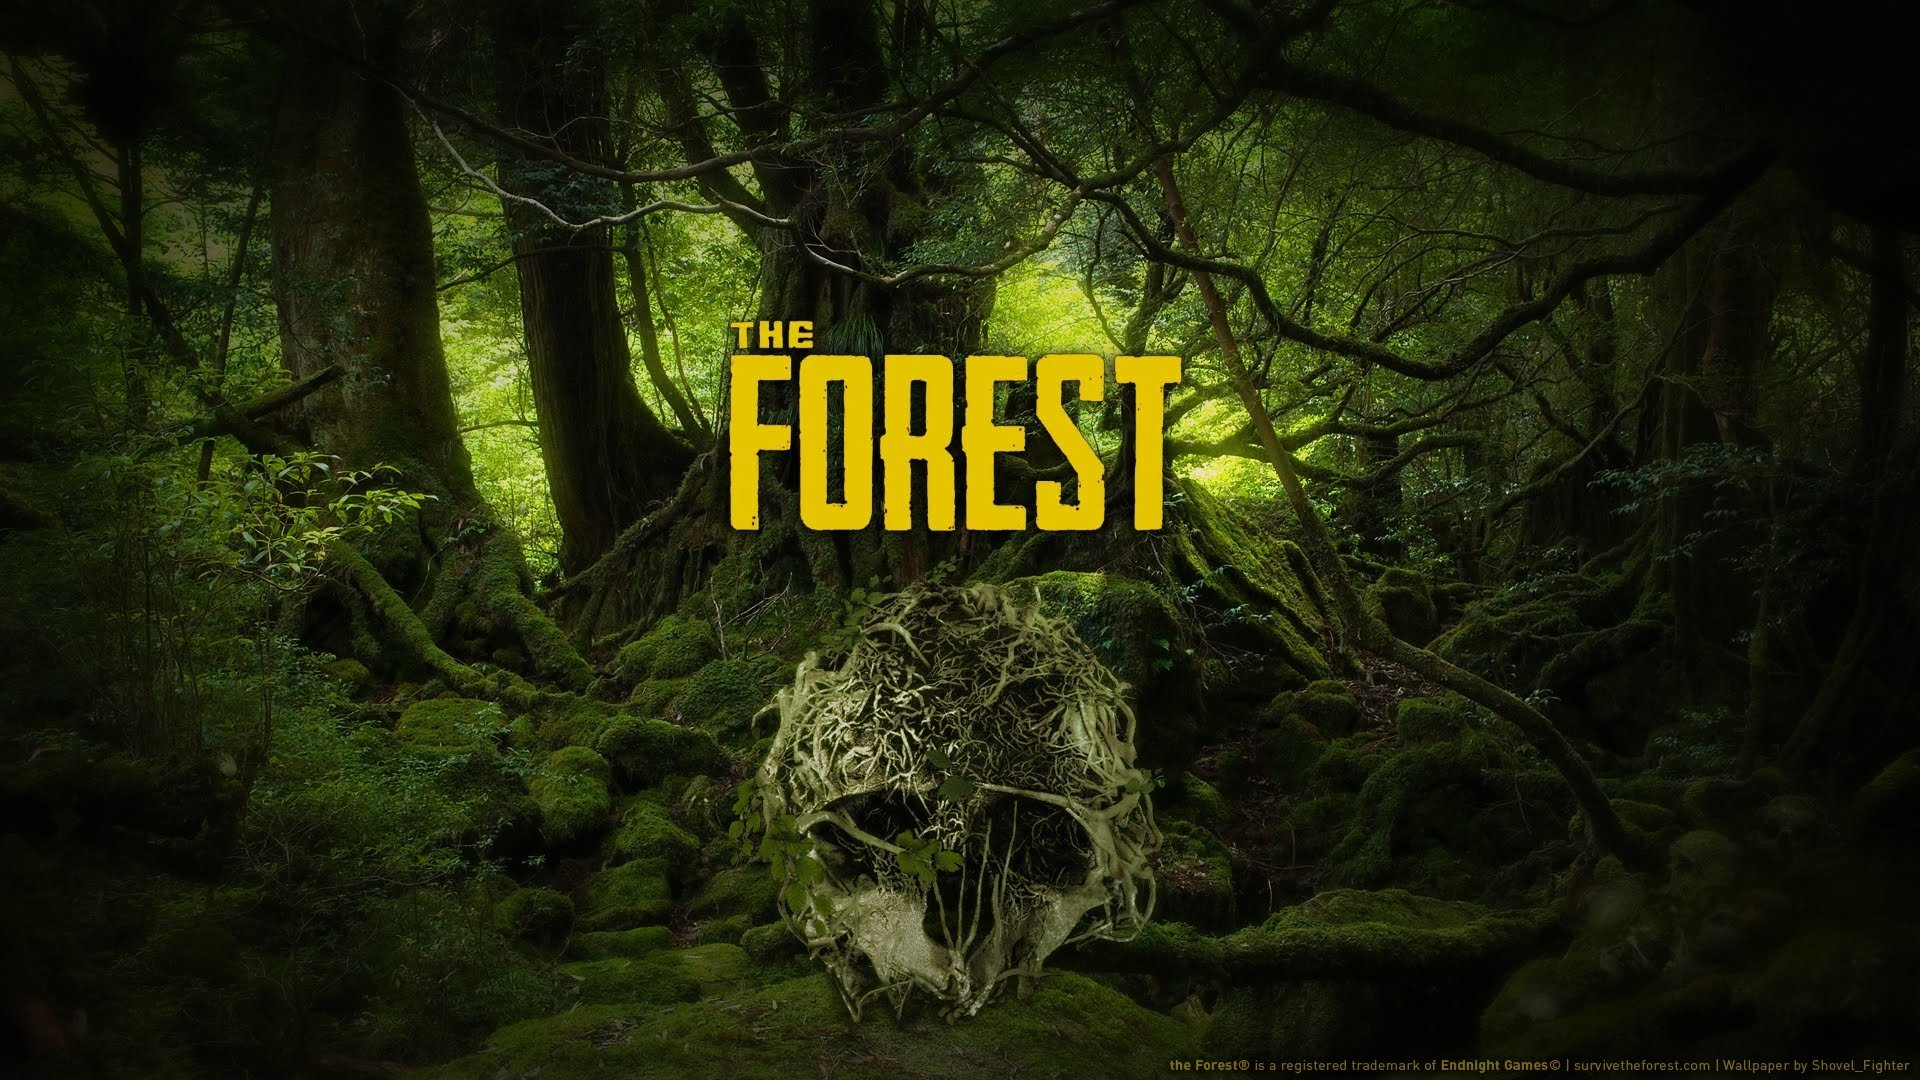 the forest hd wallpaper background image 1920x1080 id 889405wallpapers id 889405